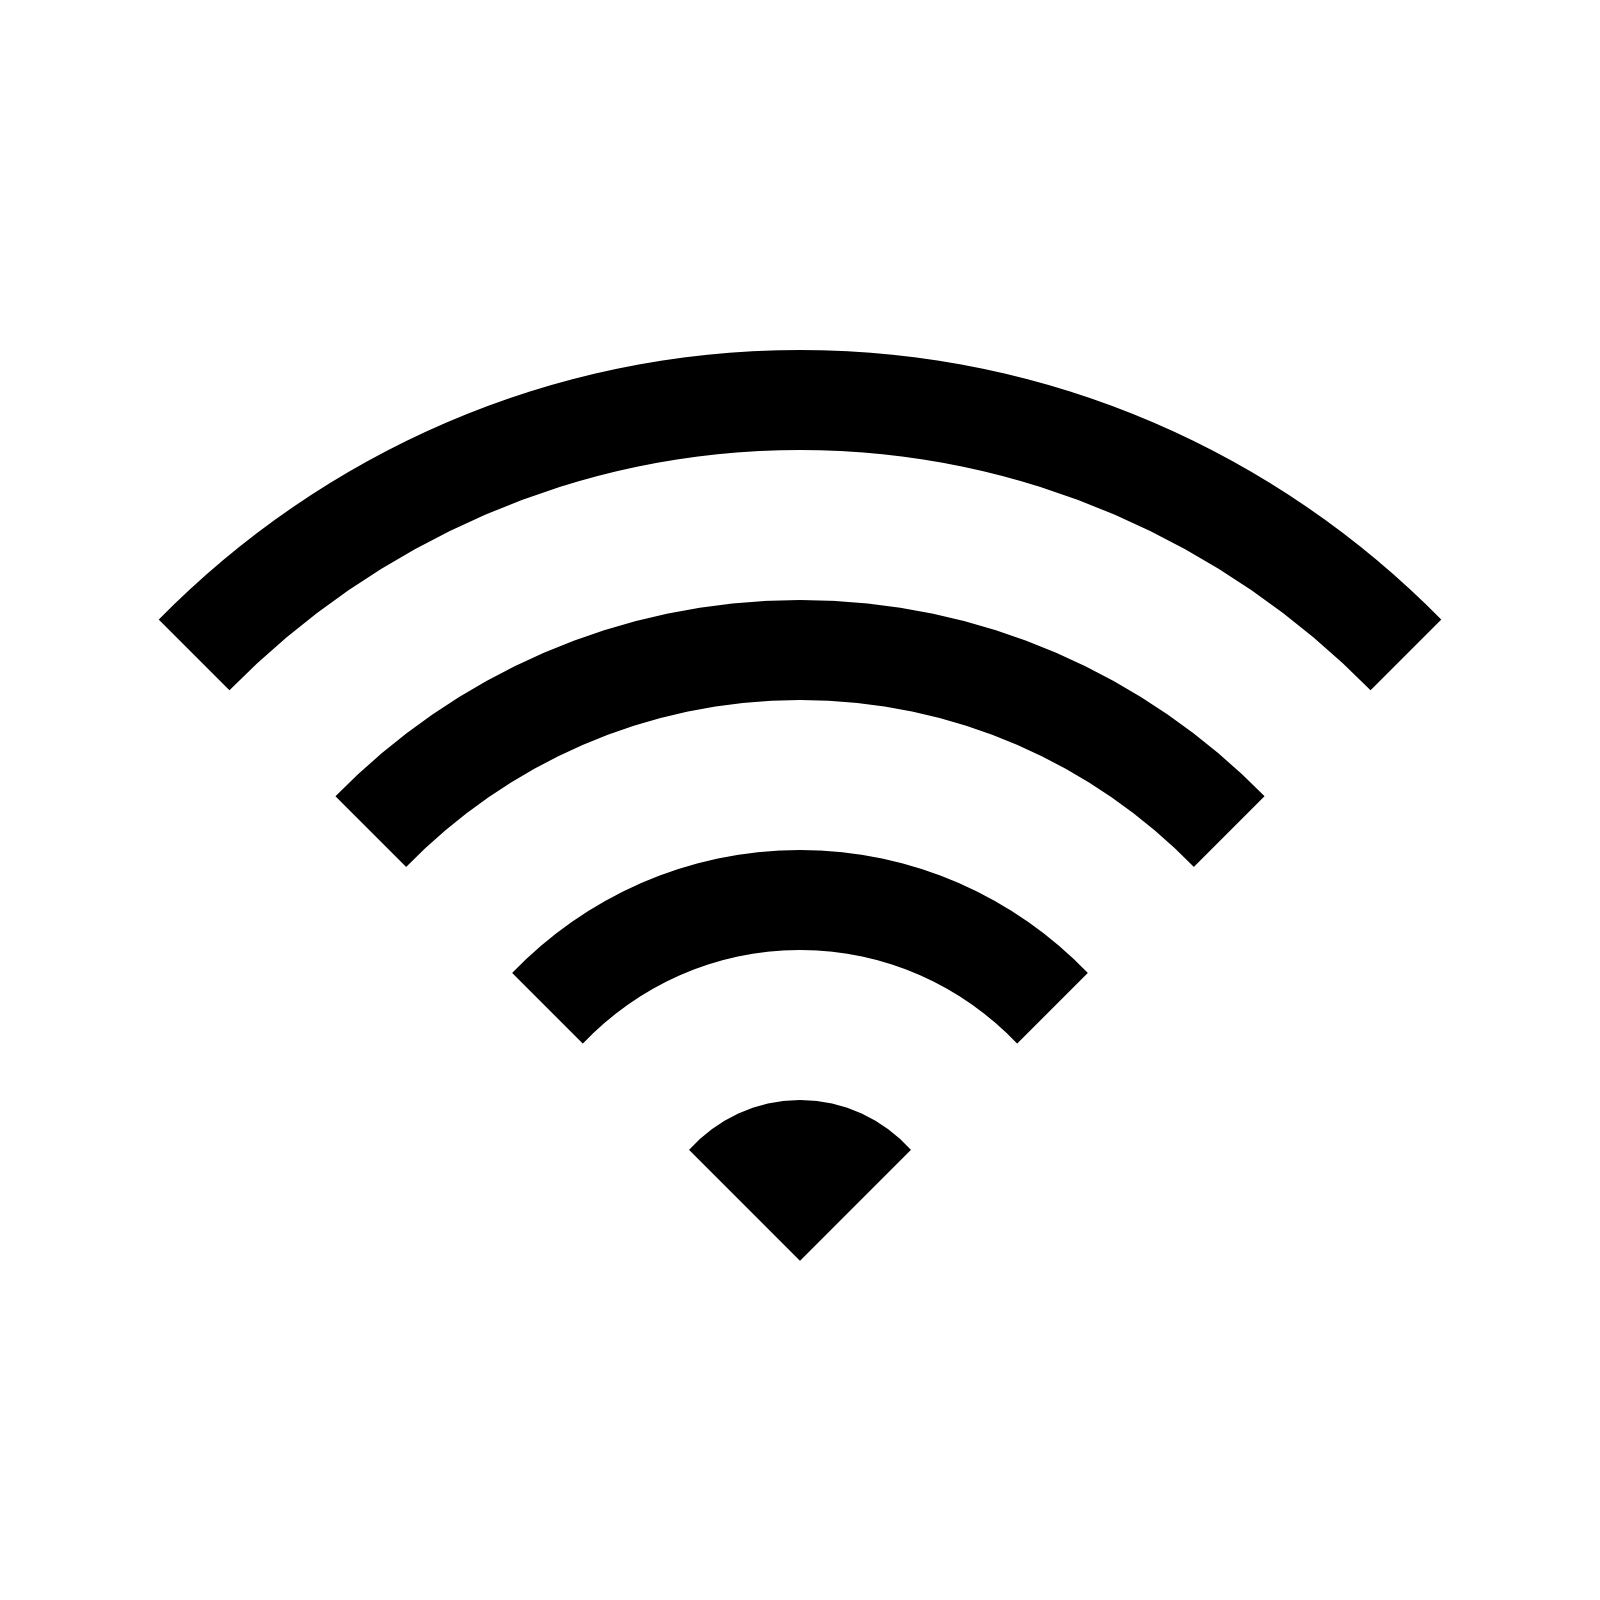 Wi-Fi icon - Wifi PNG